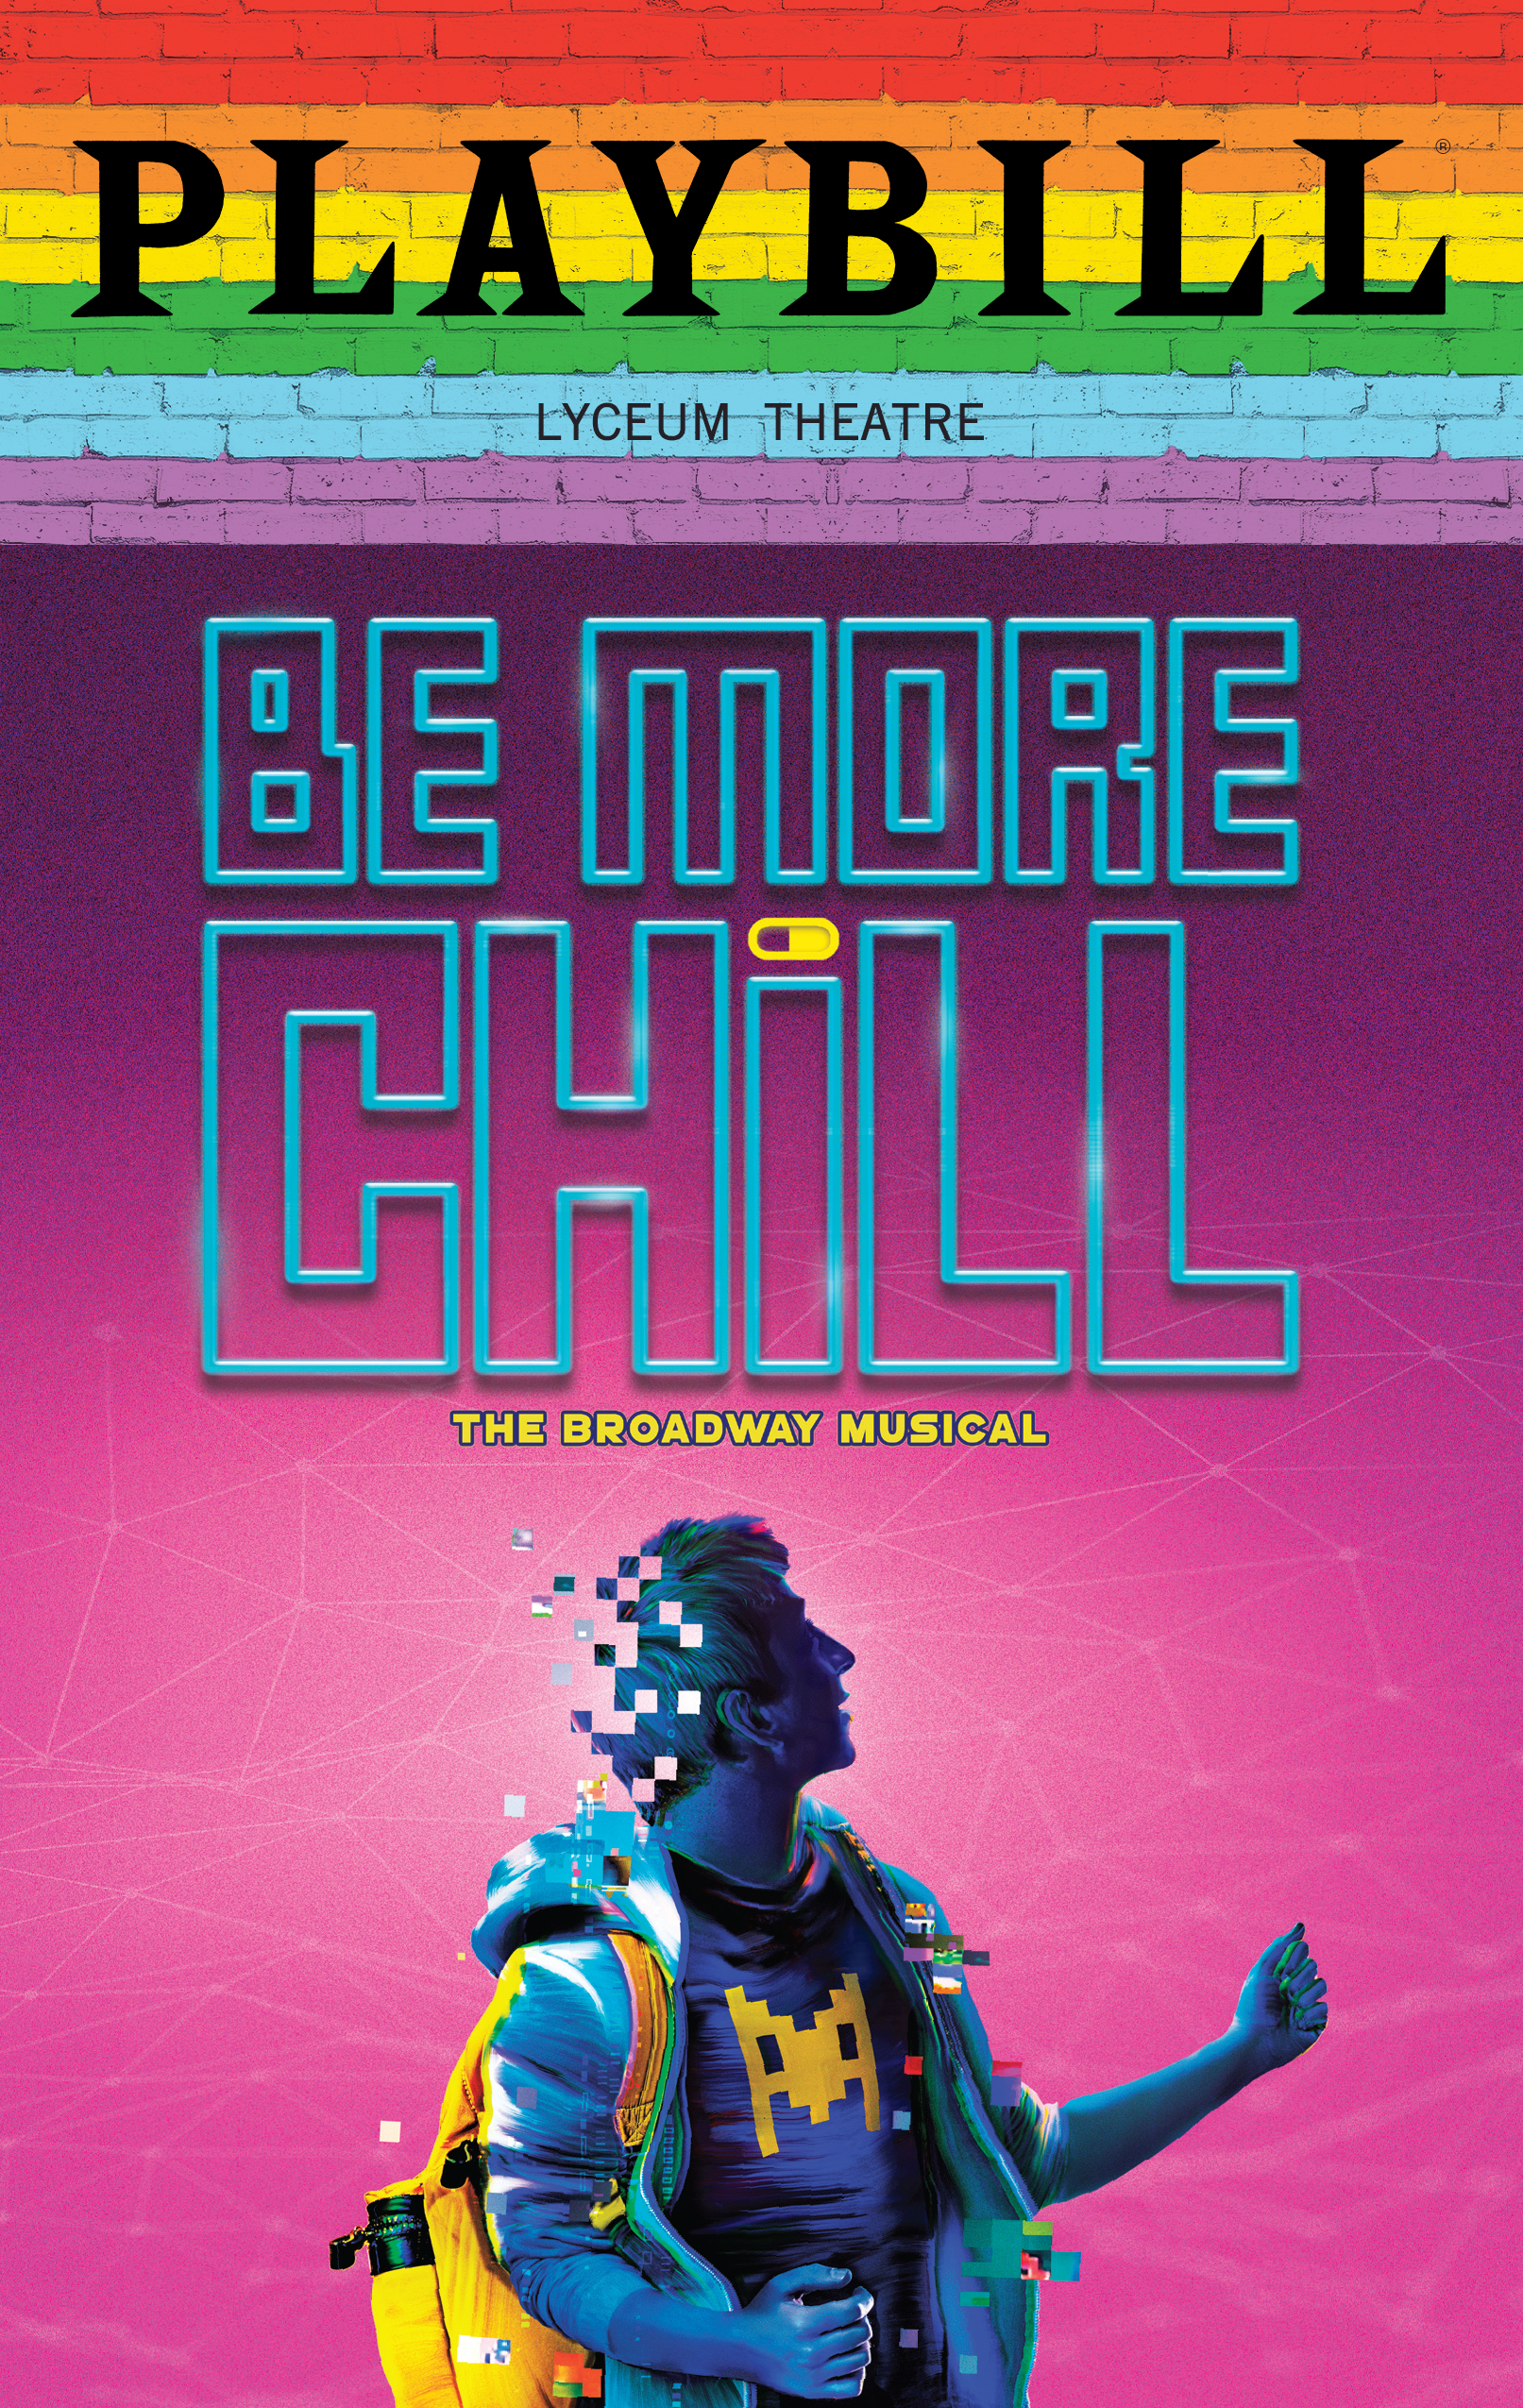 Be More Chill June 2019 Playbill With Rainbow Pride Logo